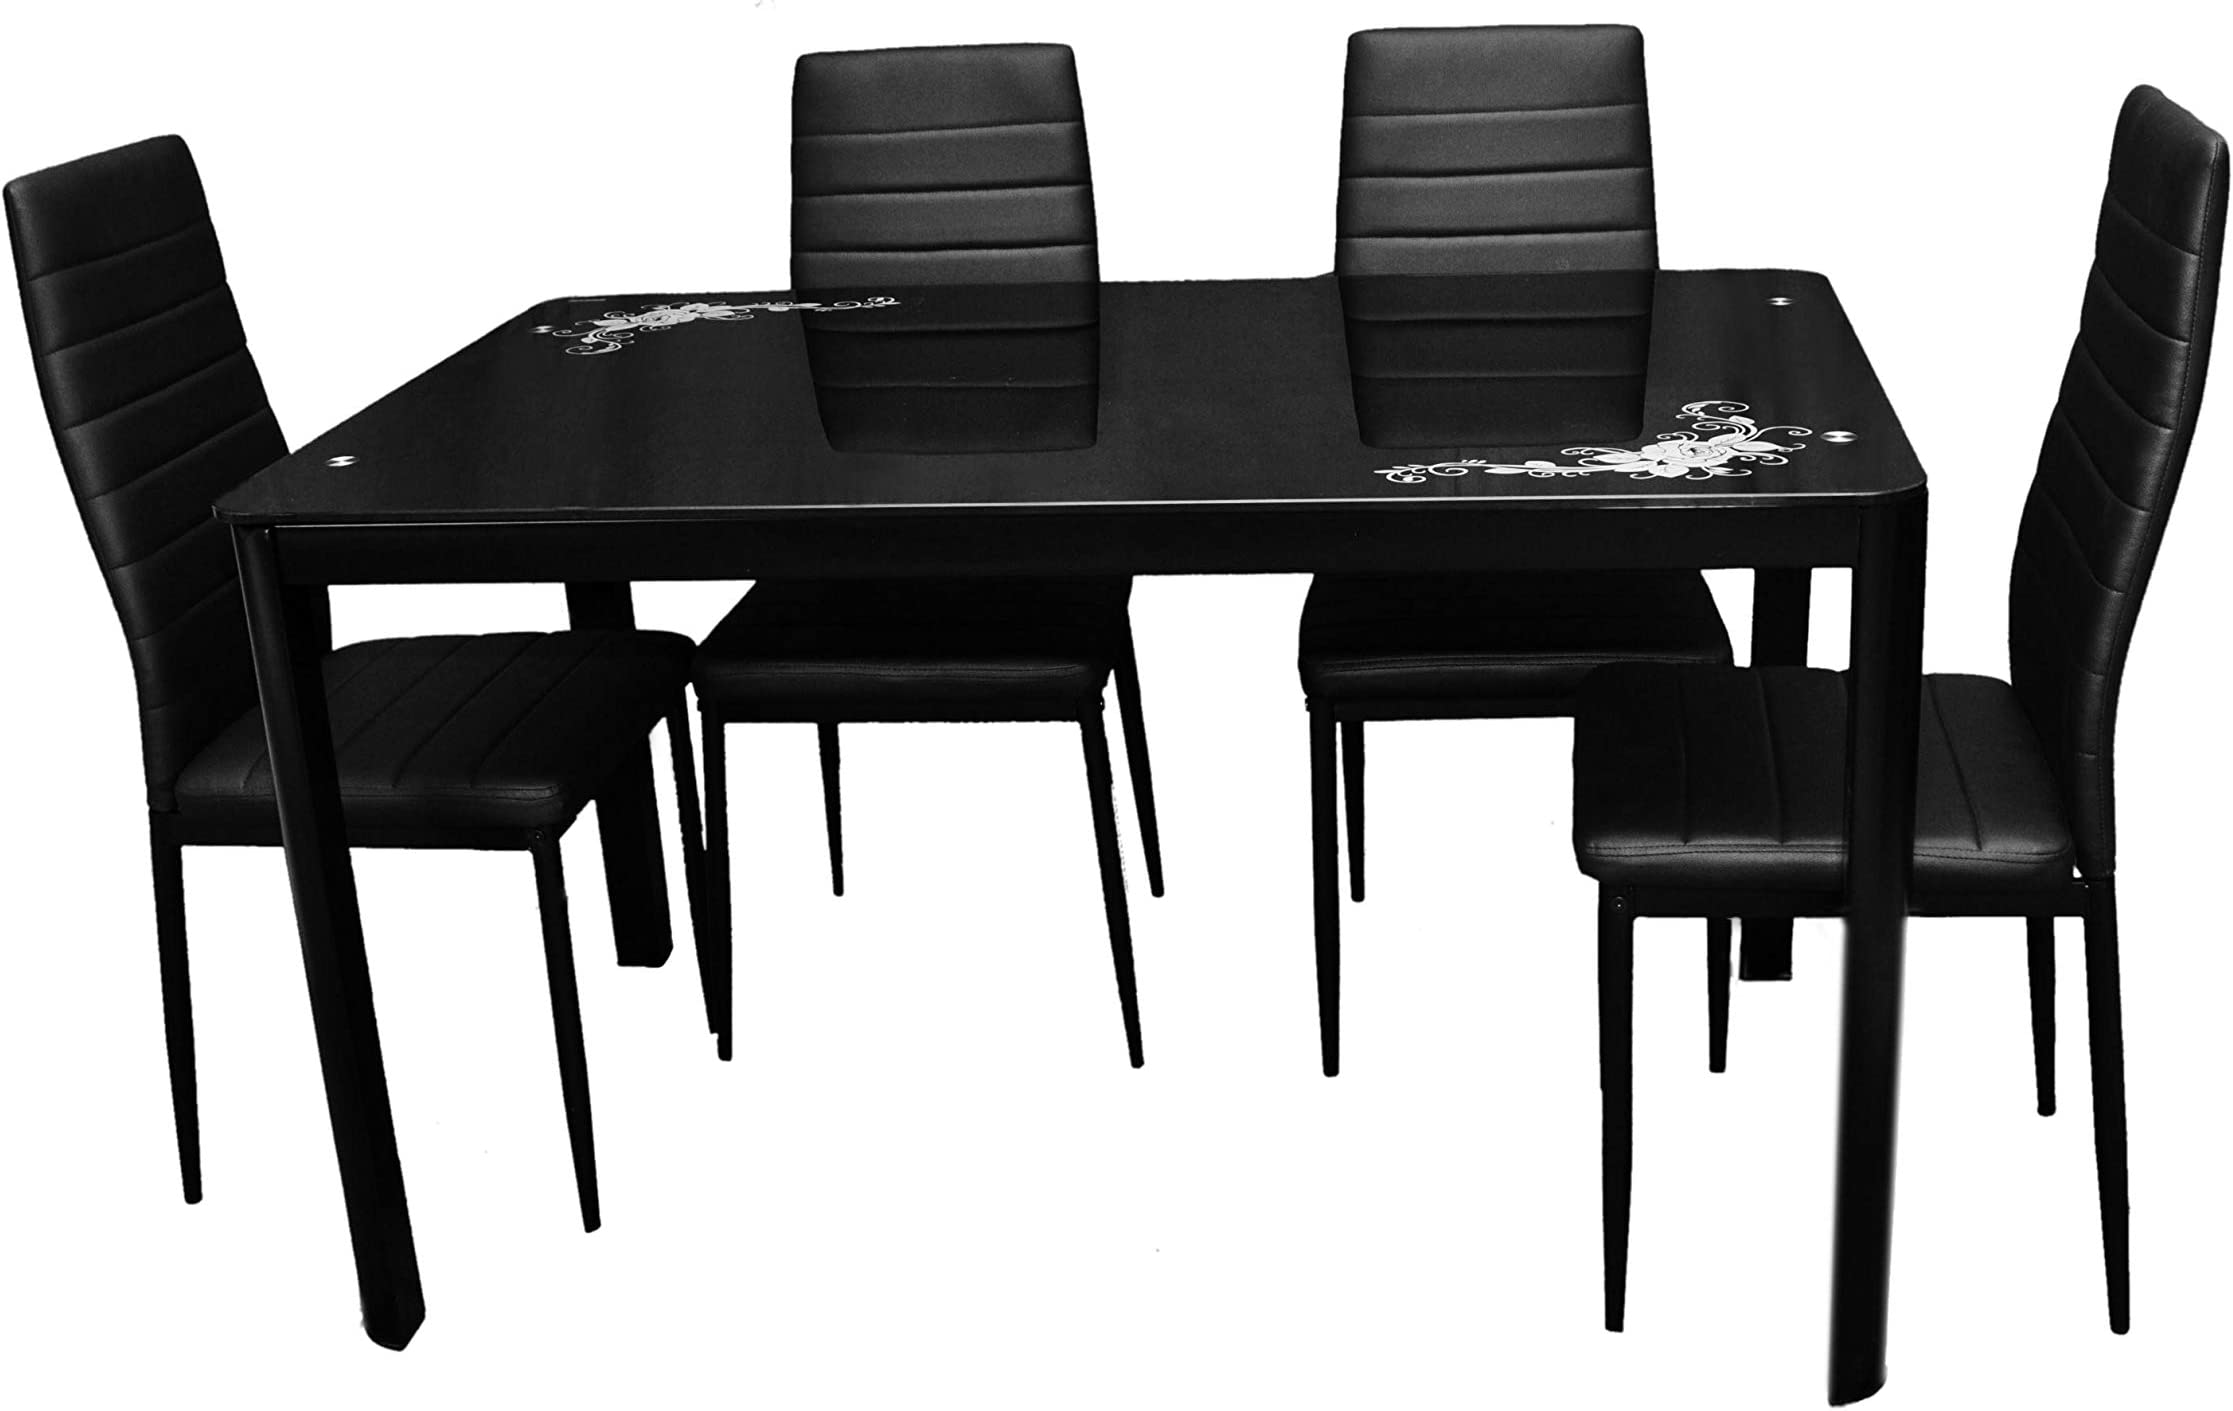 Zena Metal And Glass Dining Table Set With 4 Chairs Black 130 Cm X 80 Cm X 74 Cm Price In Uae Amazon Uae Kanbkam